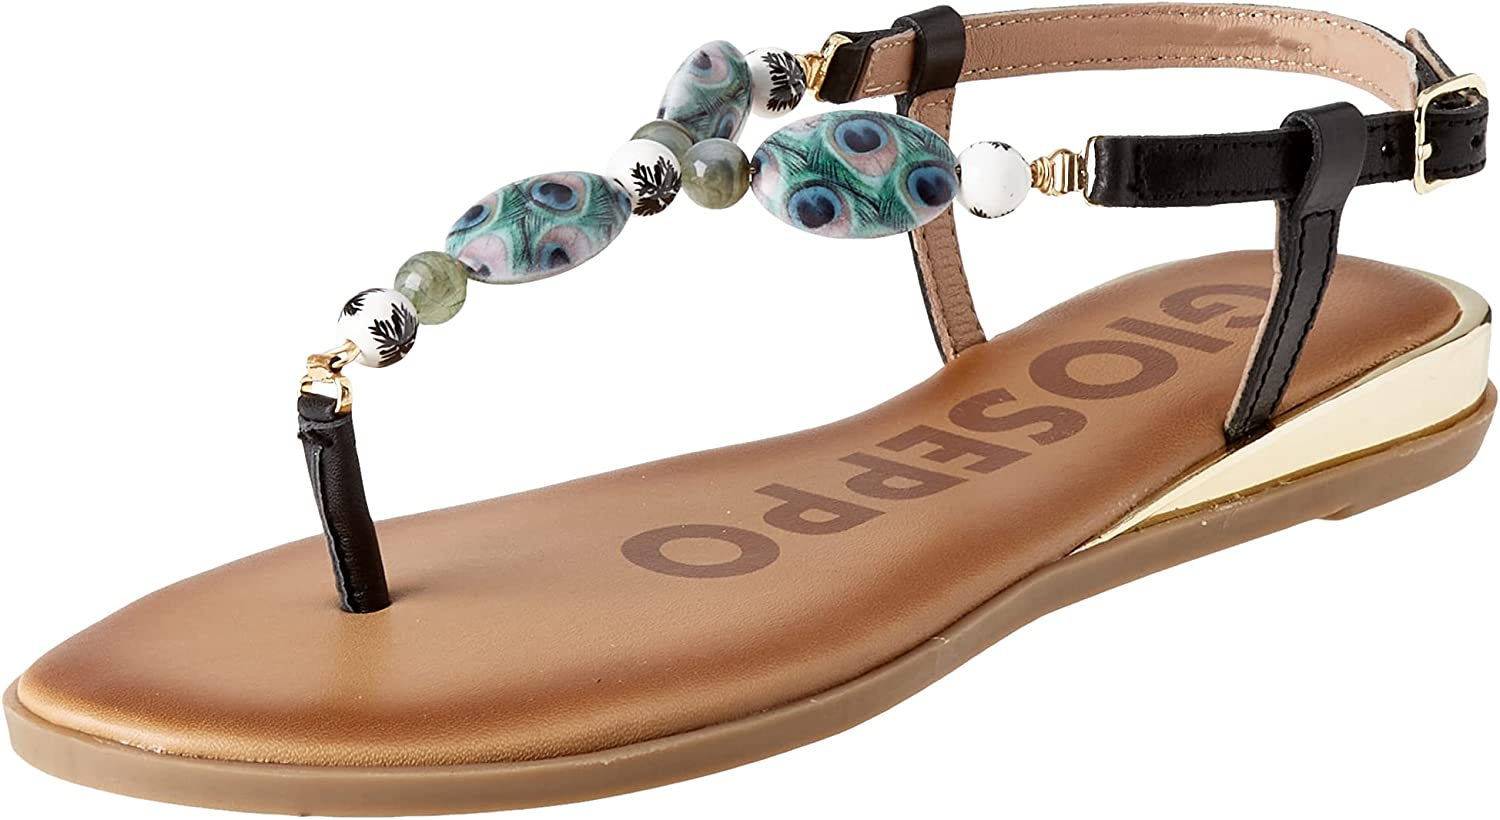 GIOSEPPO 70% OFF Outlet Women's Ankle-Strap Genuine Sandal Flat